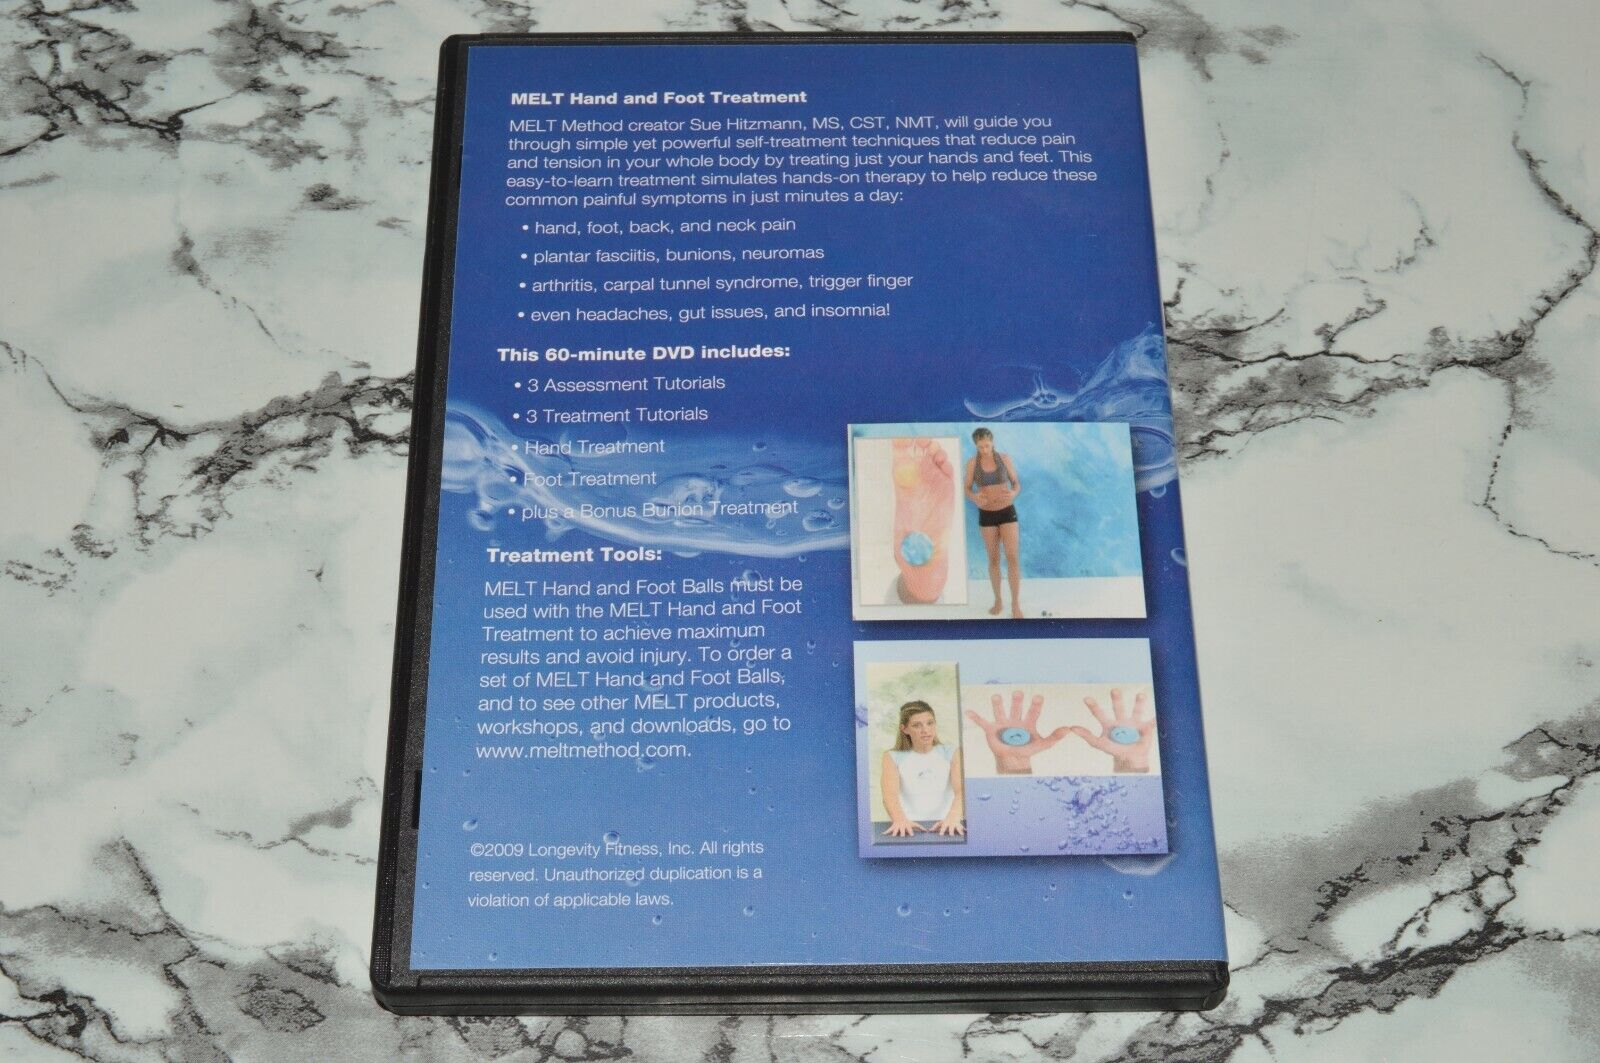 MELT Hand And Foot Treatment With Sue Hitzmann DVD, 2009 -- M.E.L.T. Method - $12.68